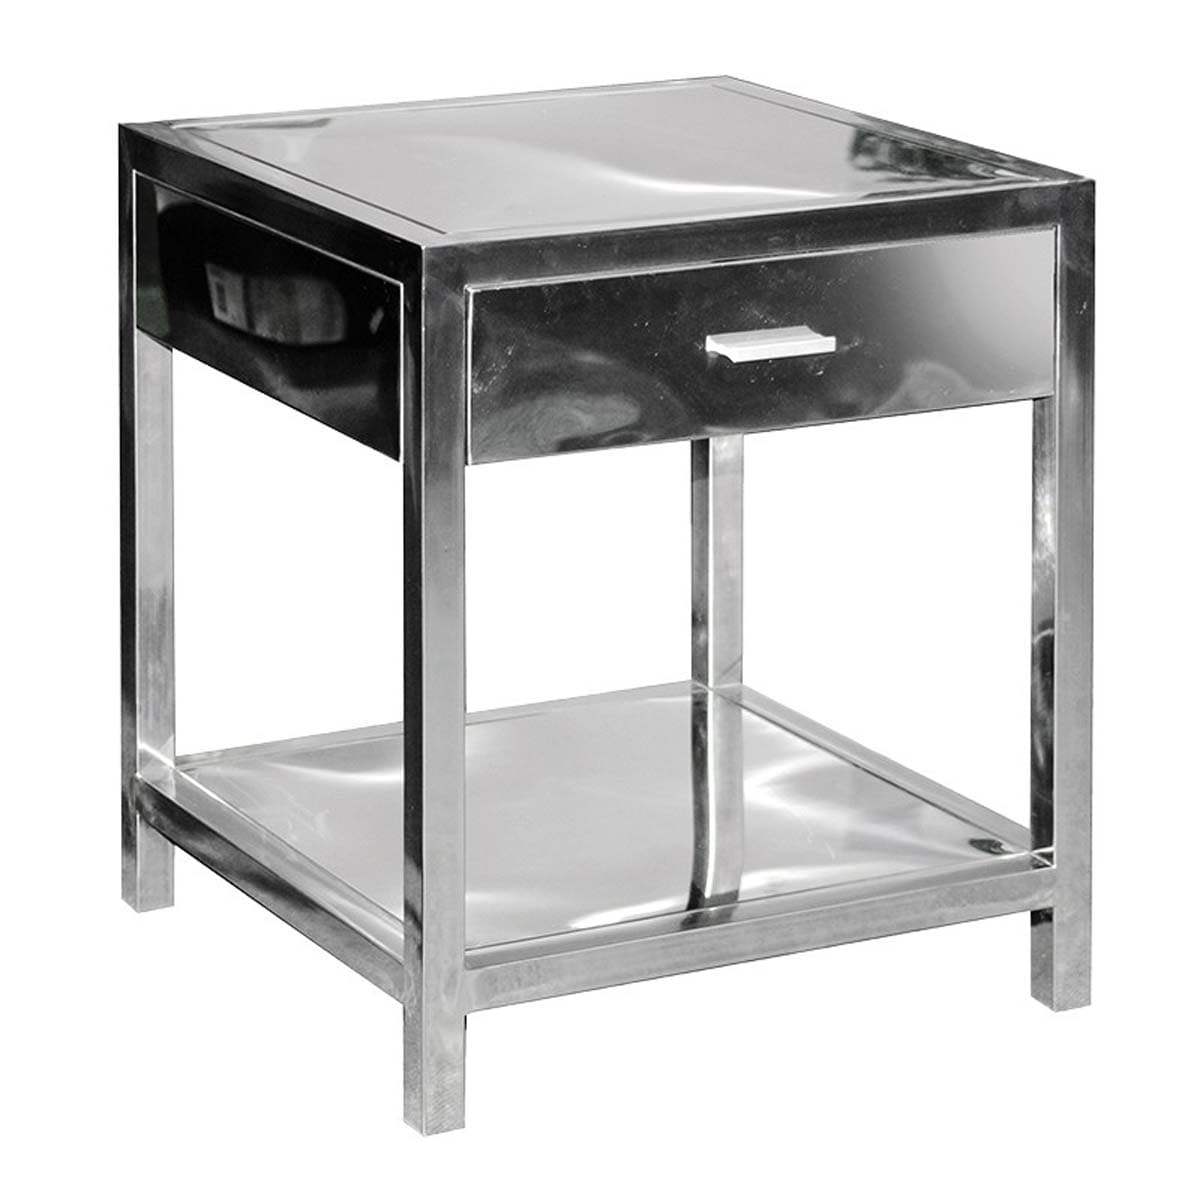 Atlas Polished Chrome 1 Drawer Side Table with Shelf